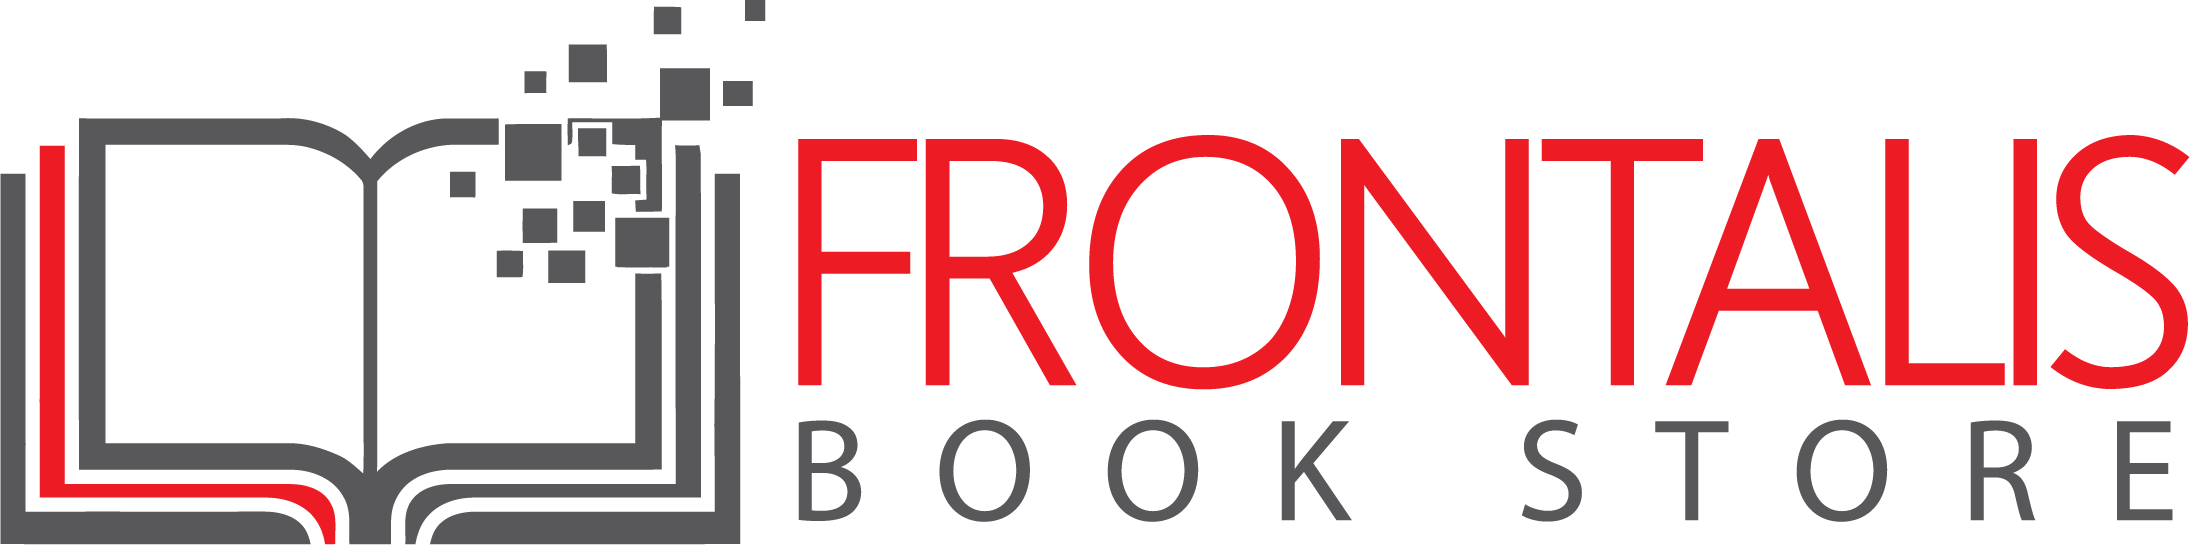 Frontalis Book Store